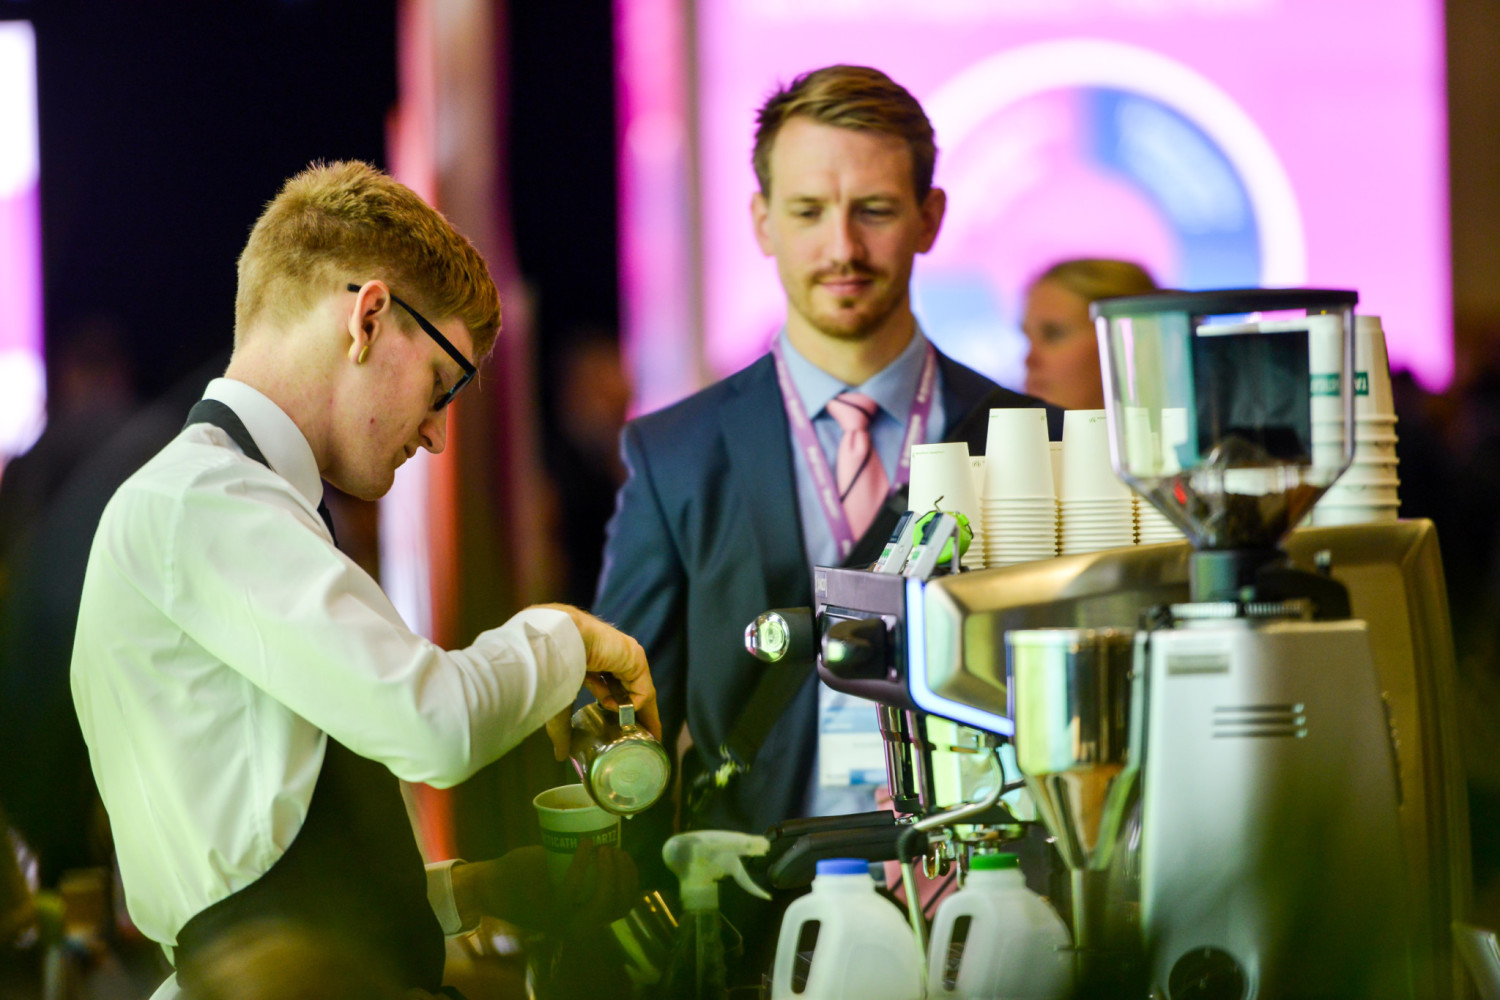 Serving coffee to an exhibition guest